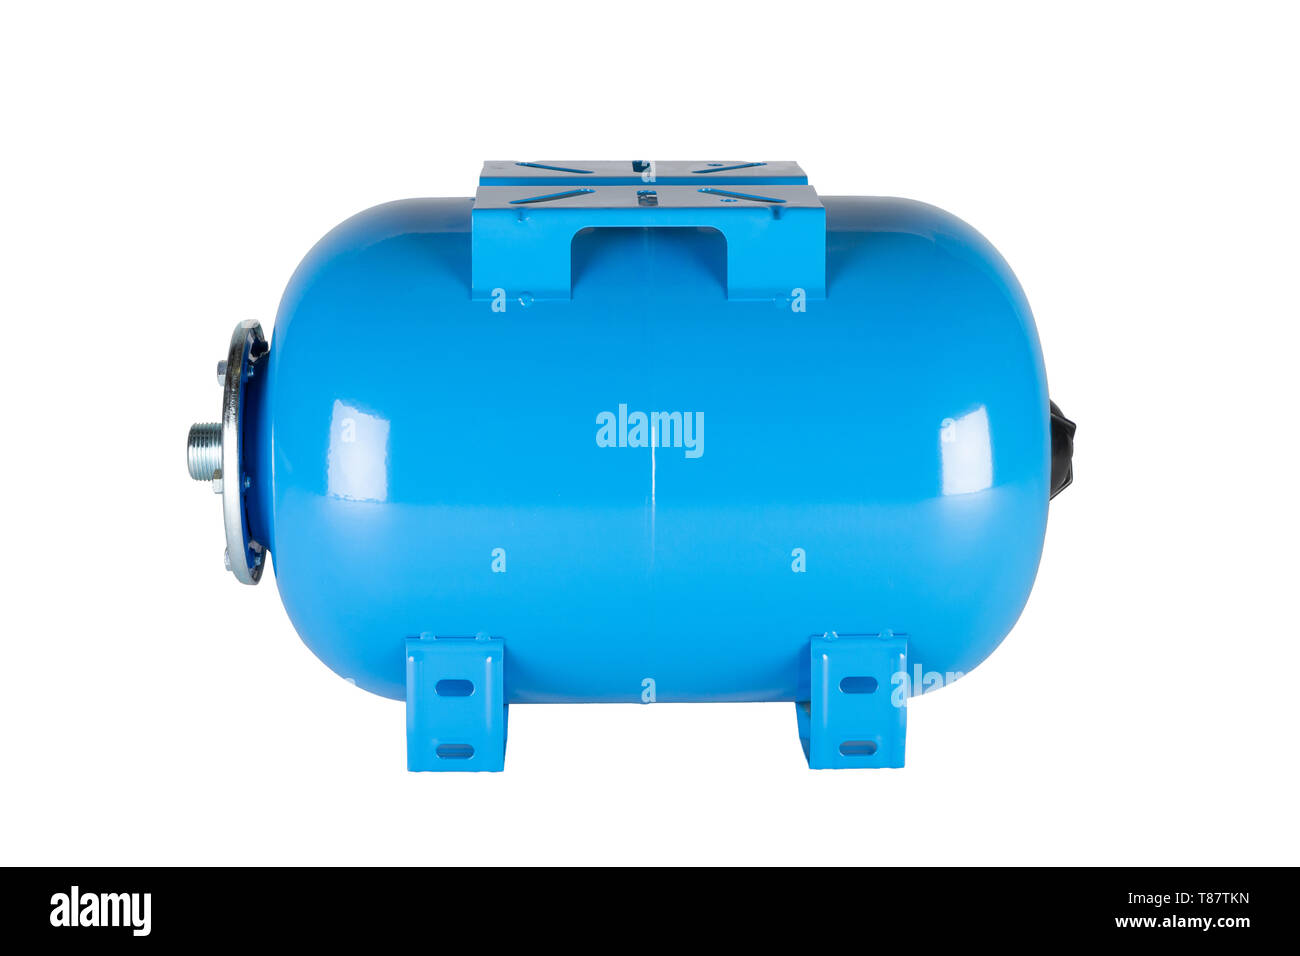 Blue horizontal pressure tank isolated on a white background. - Stock Image